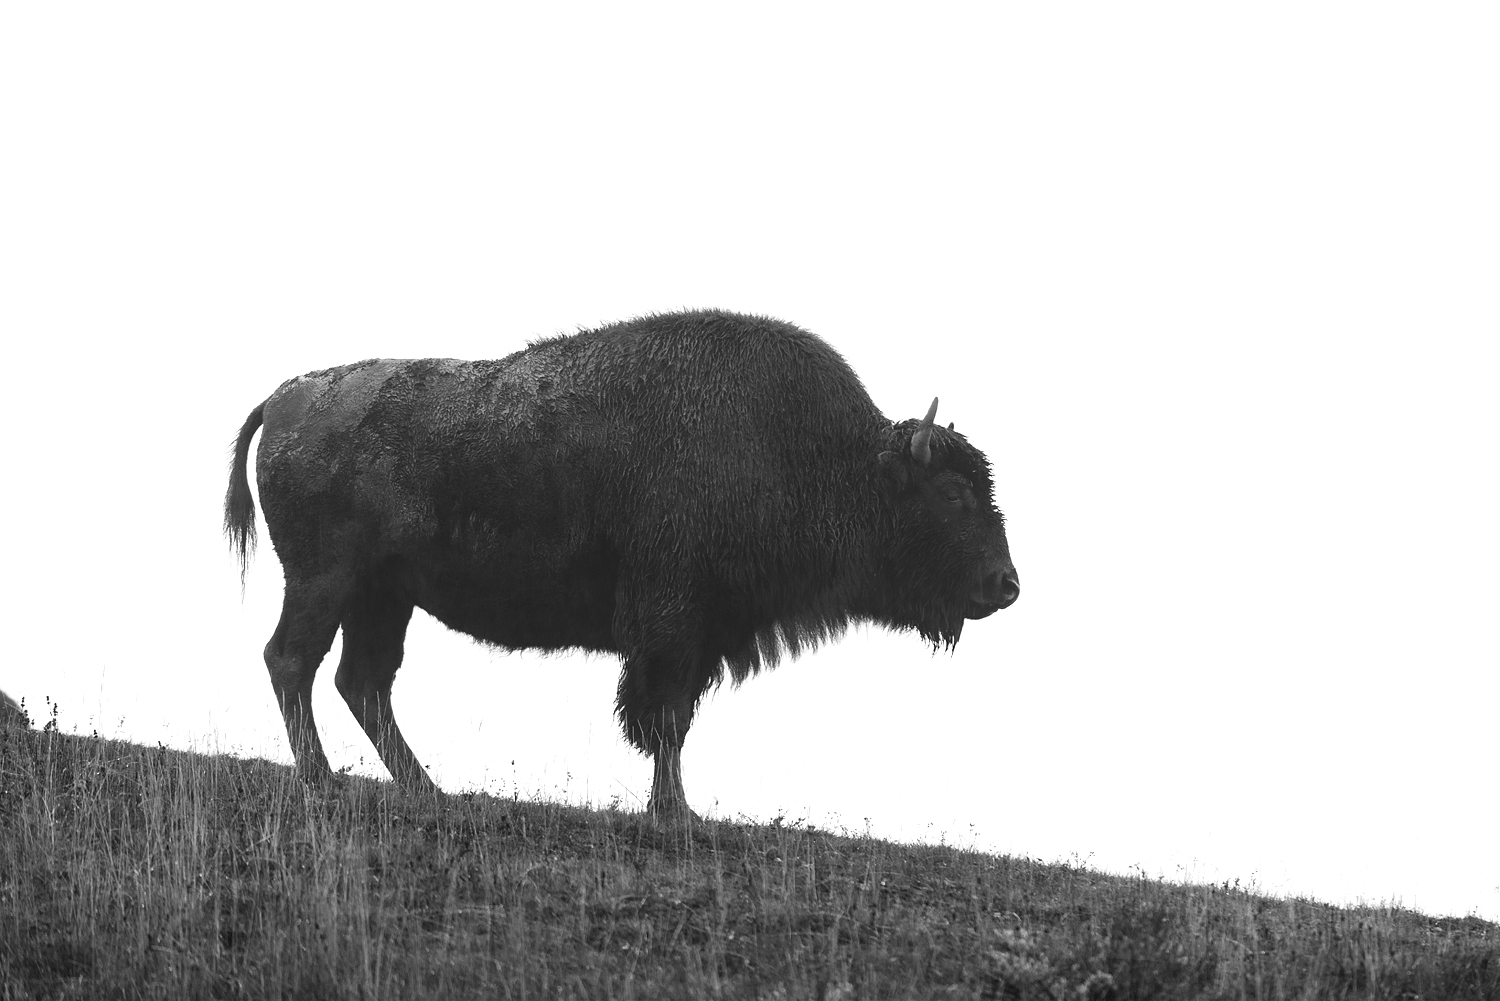 Bison on Hilltop, Black and White, Yellowstone National Park, Wyoming